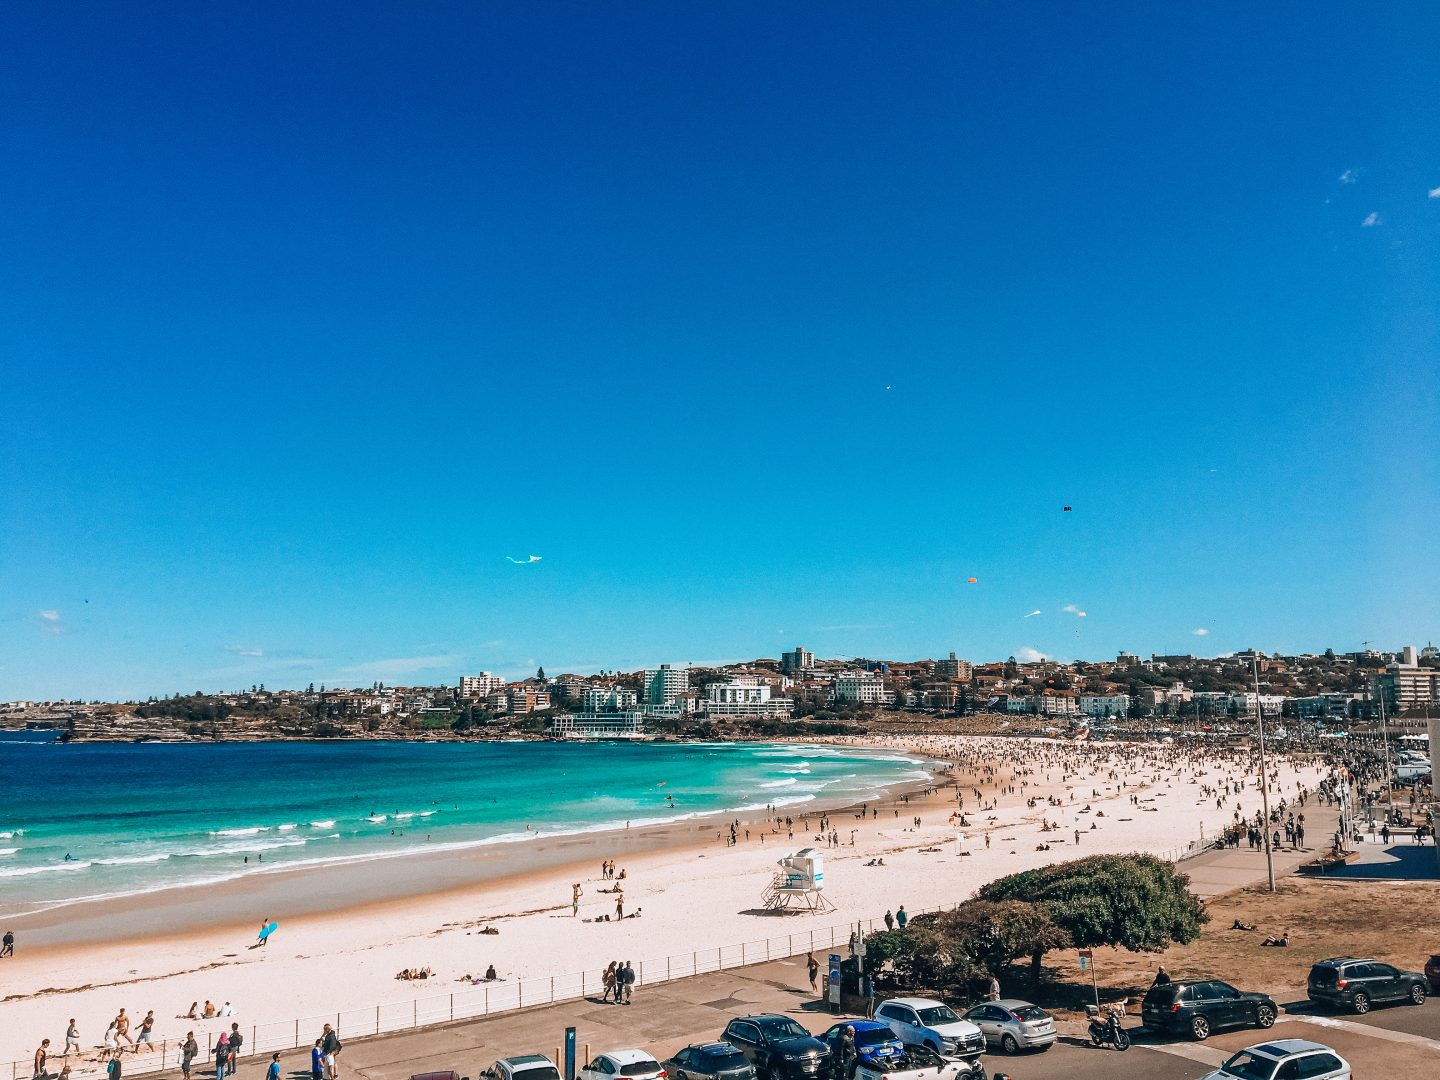 Bondi Beach - 24 hours in Sydney